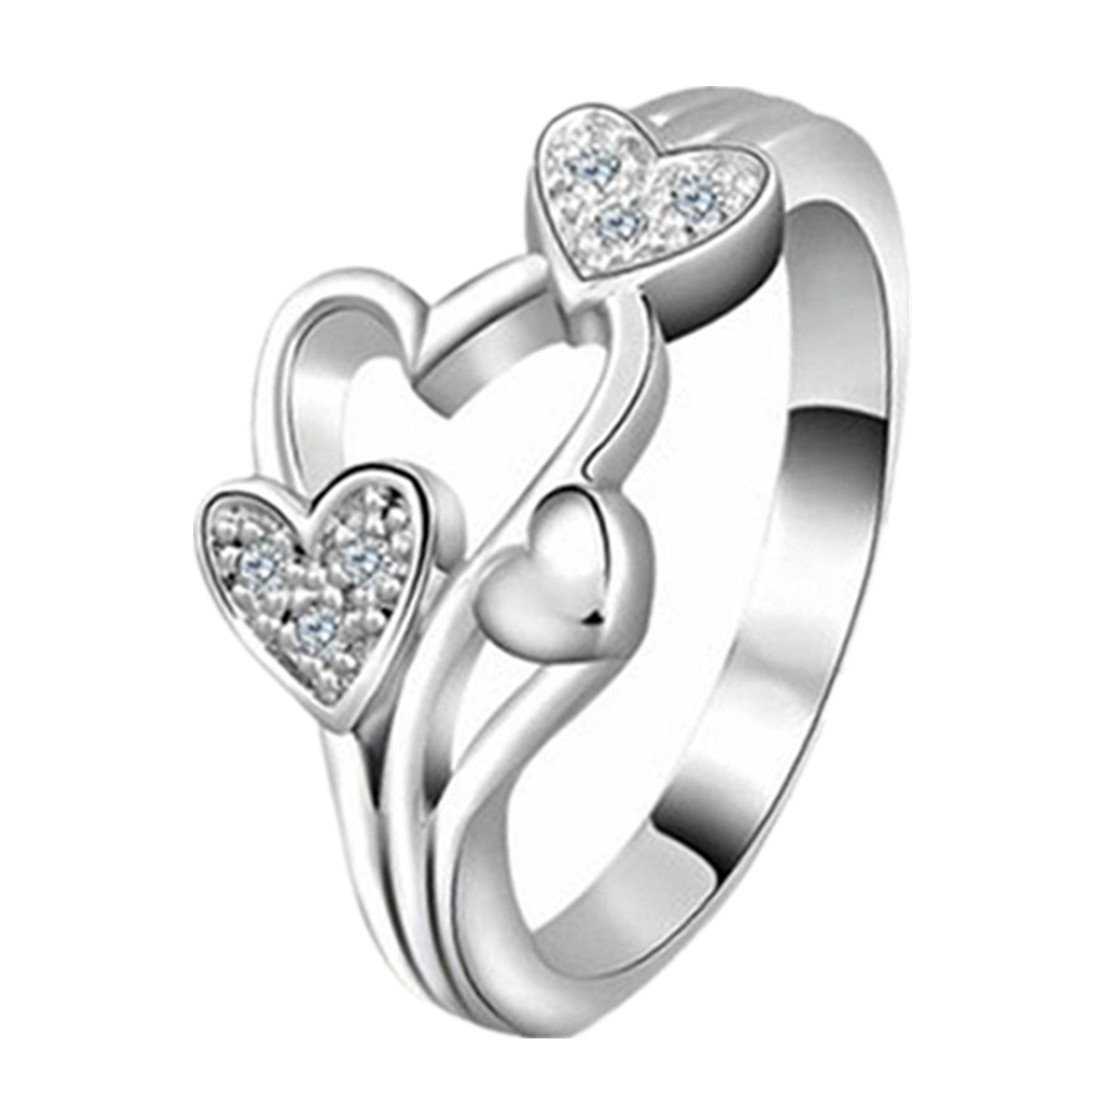 Alonea Heart Ring, Women Creative Fashion Heart Love Girls Promise Ring Exquisite Princess Rings (Silver)